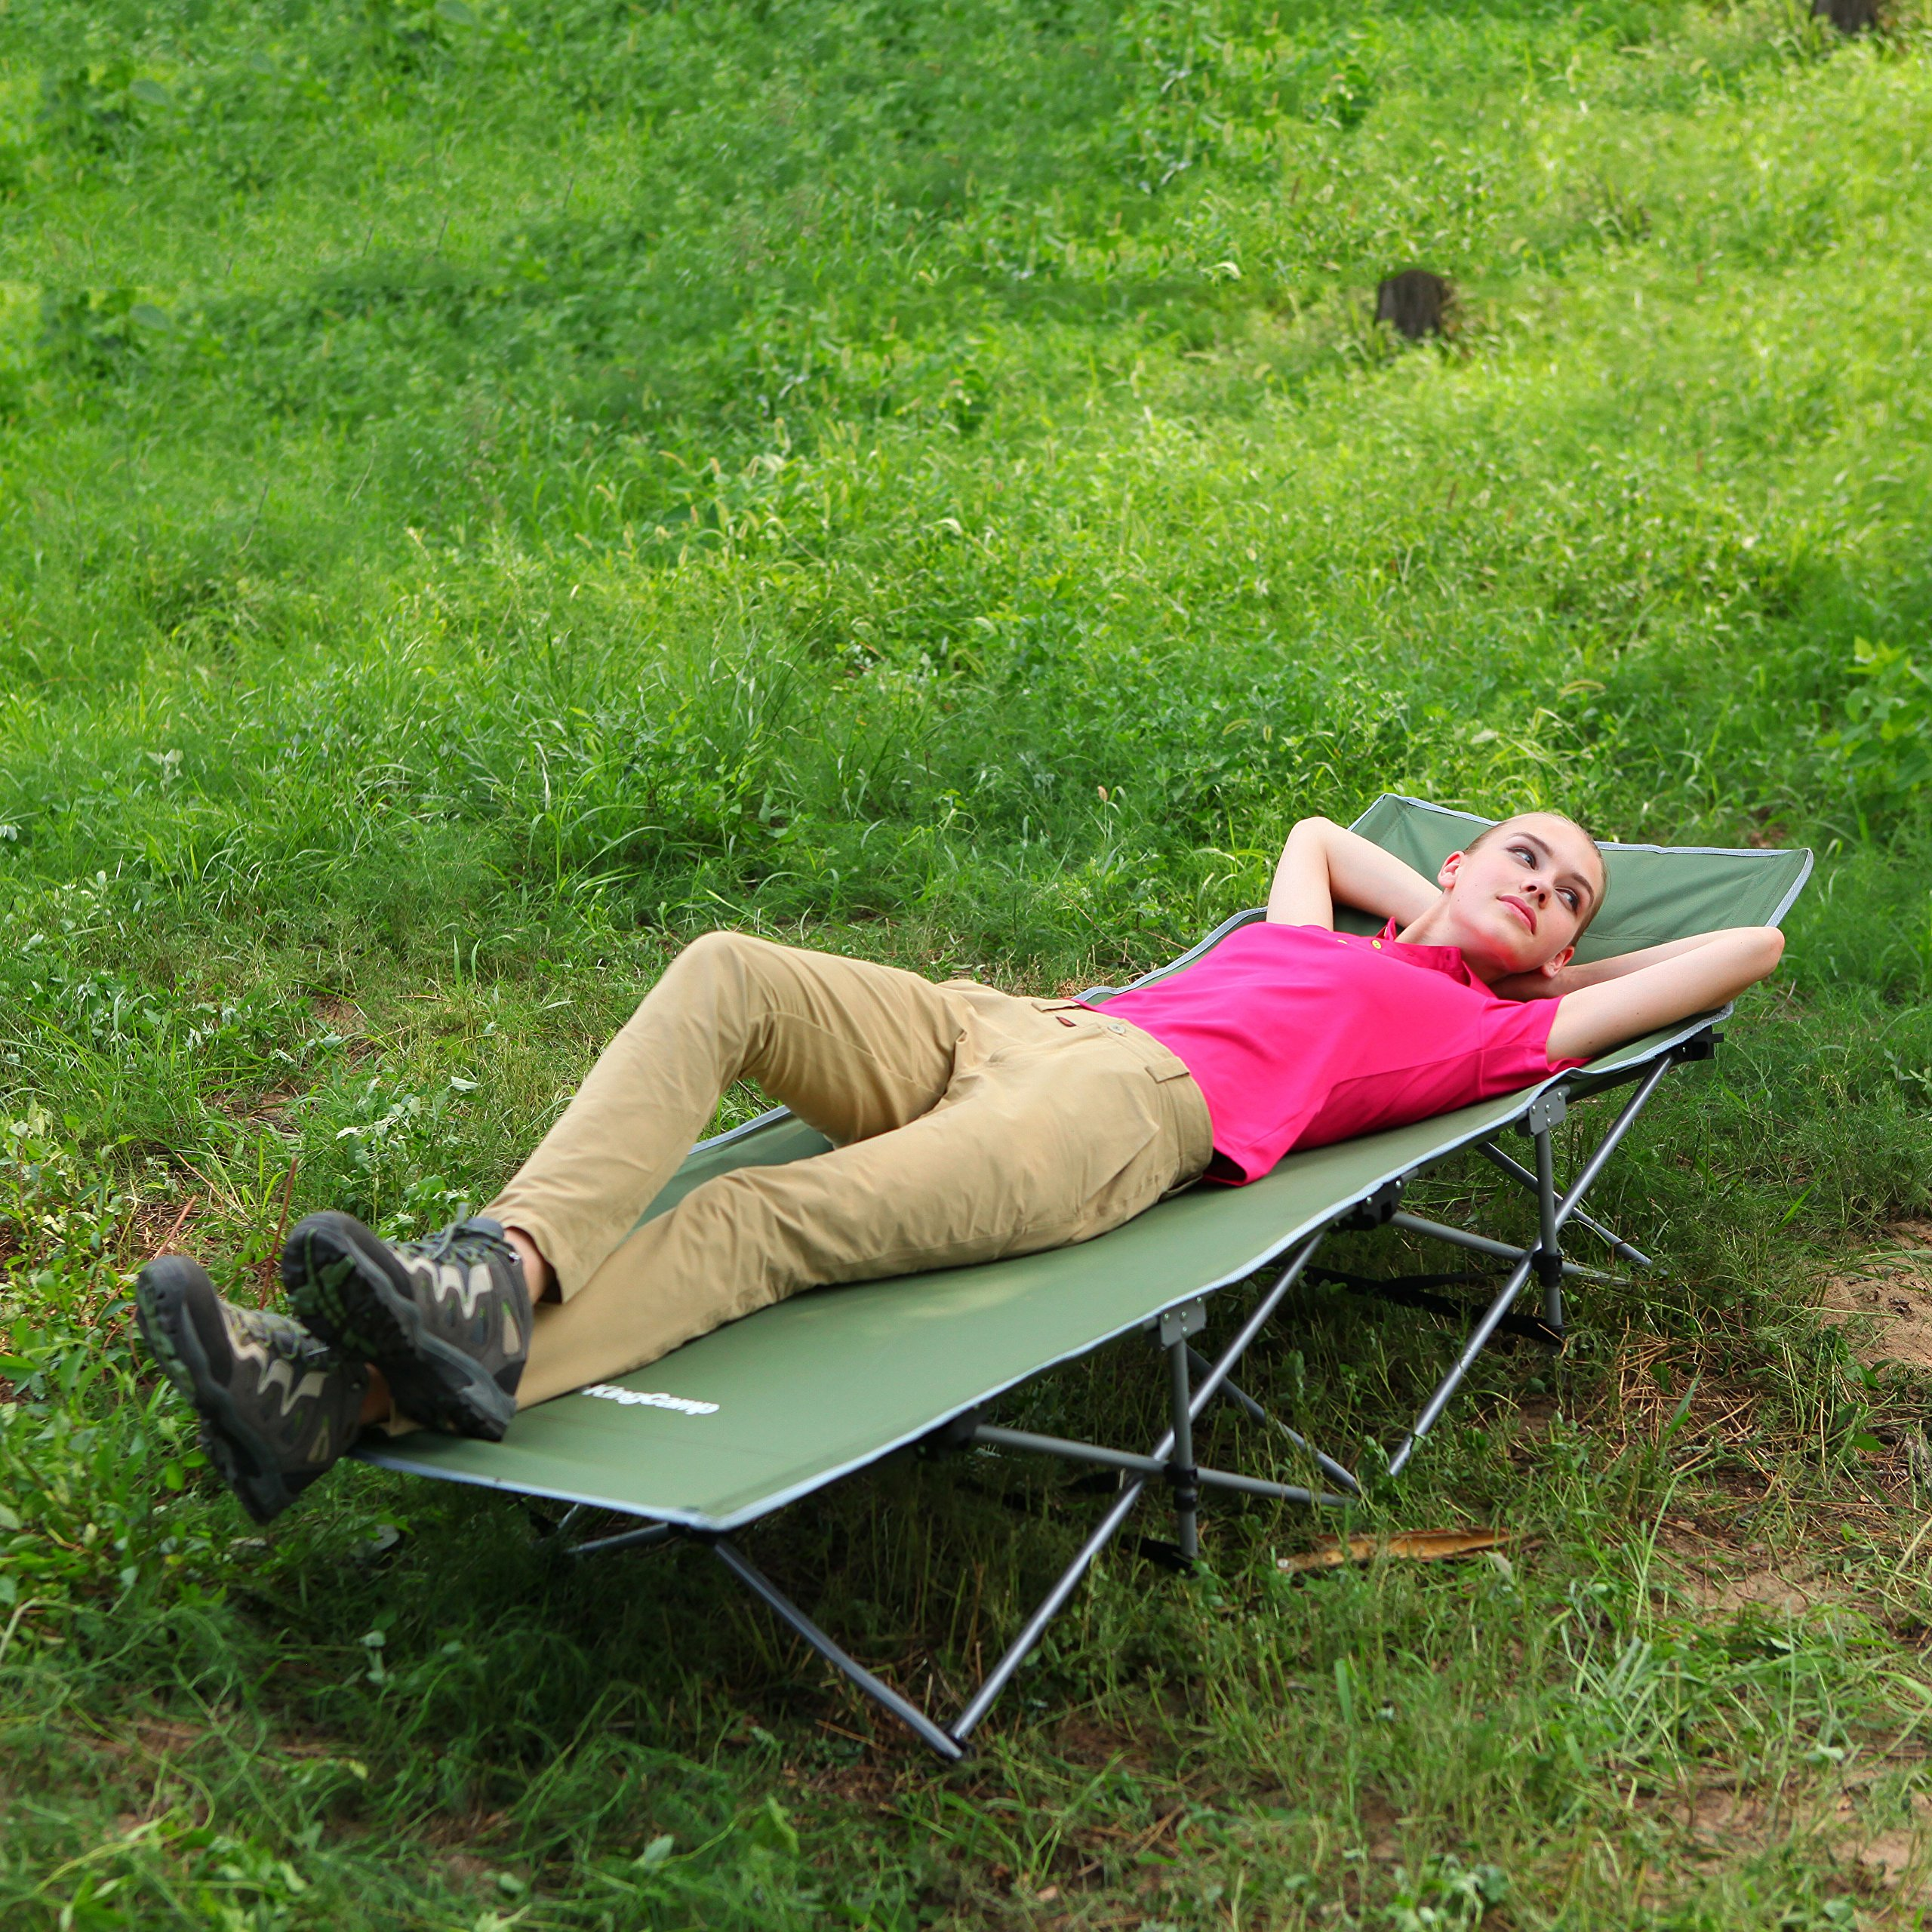 KingCamp Strong Stable Folding Camping Bed Cot with Carry Bag (Green)